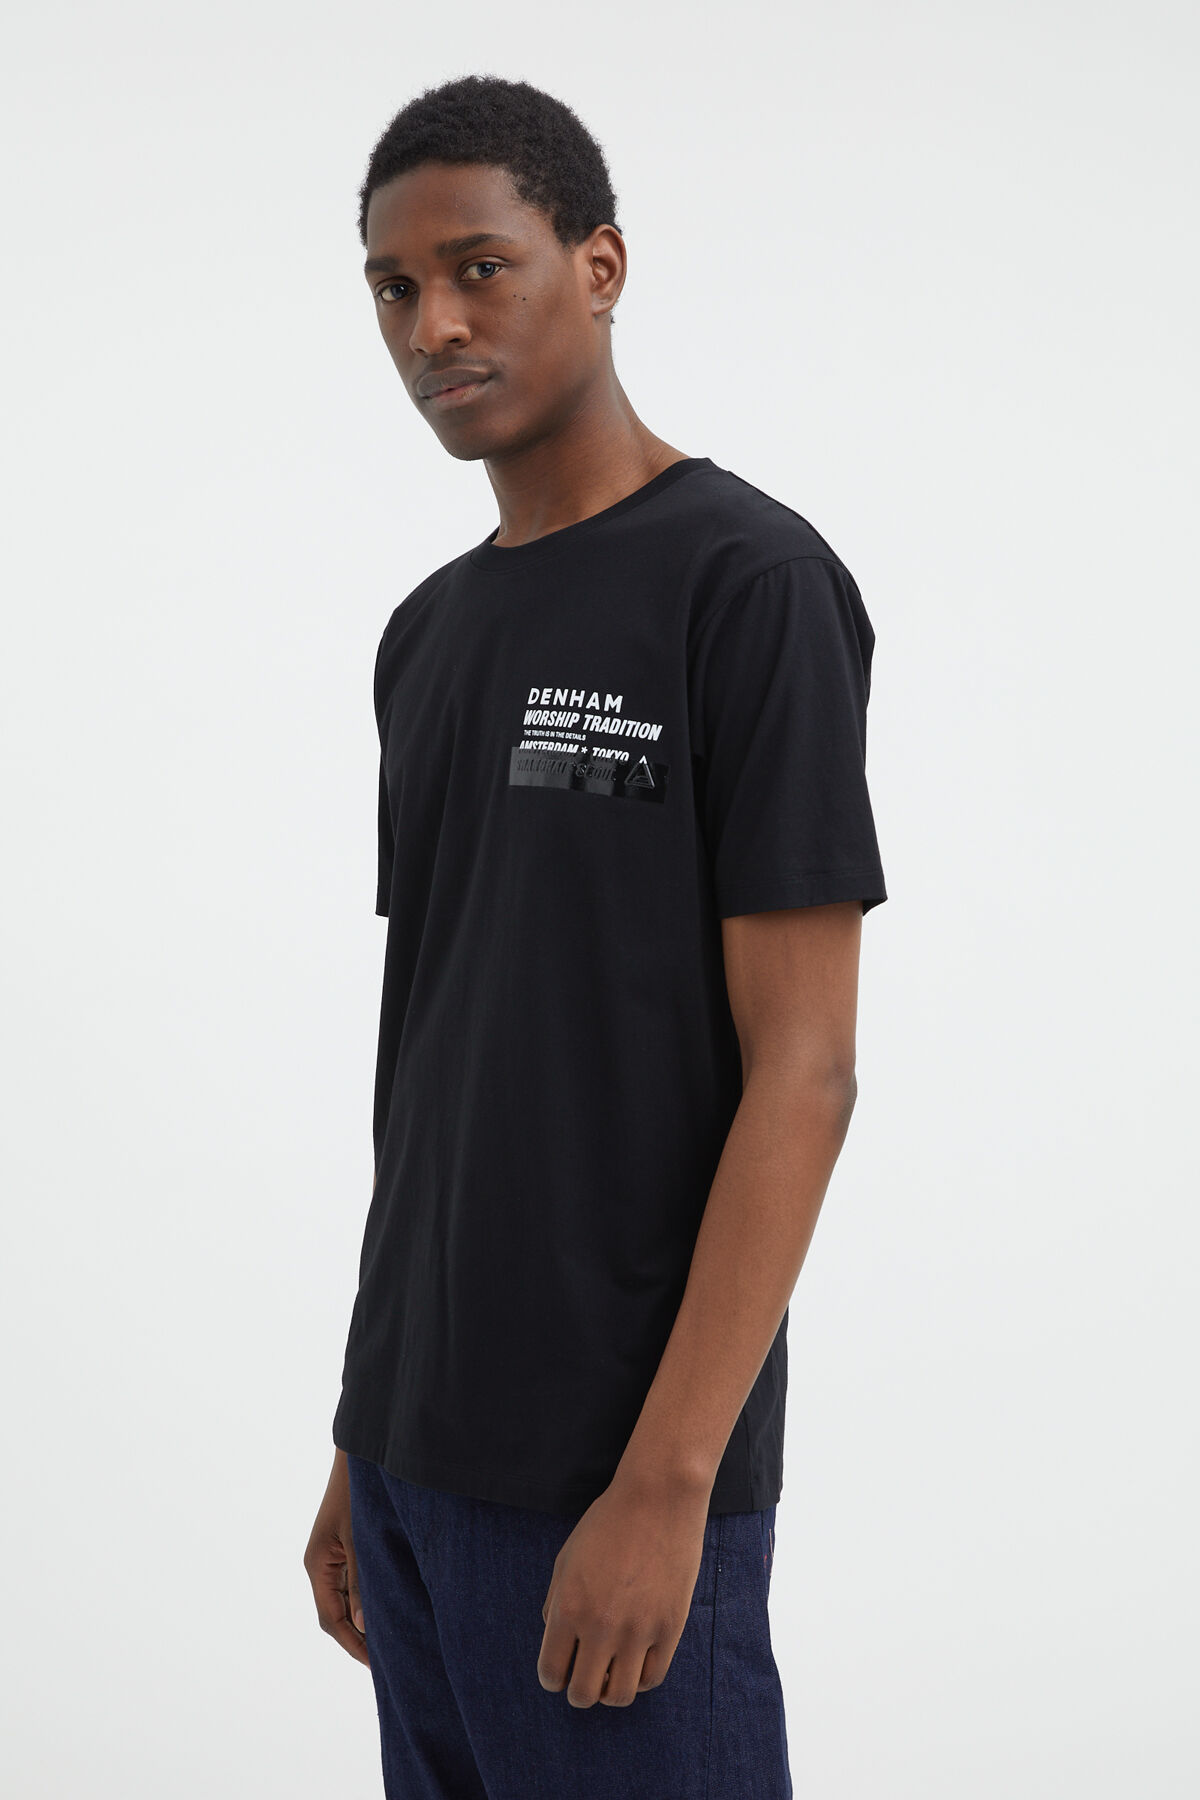 WORSHIP TRADITION TEE Jersey Cotton - Regular Fit